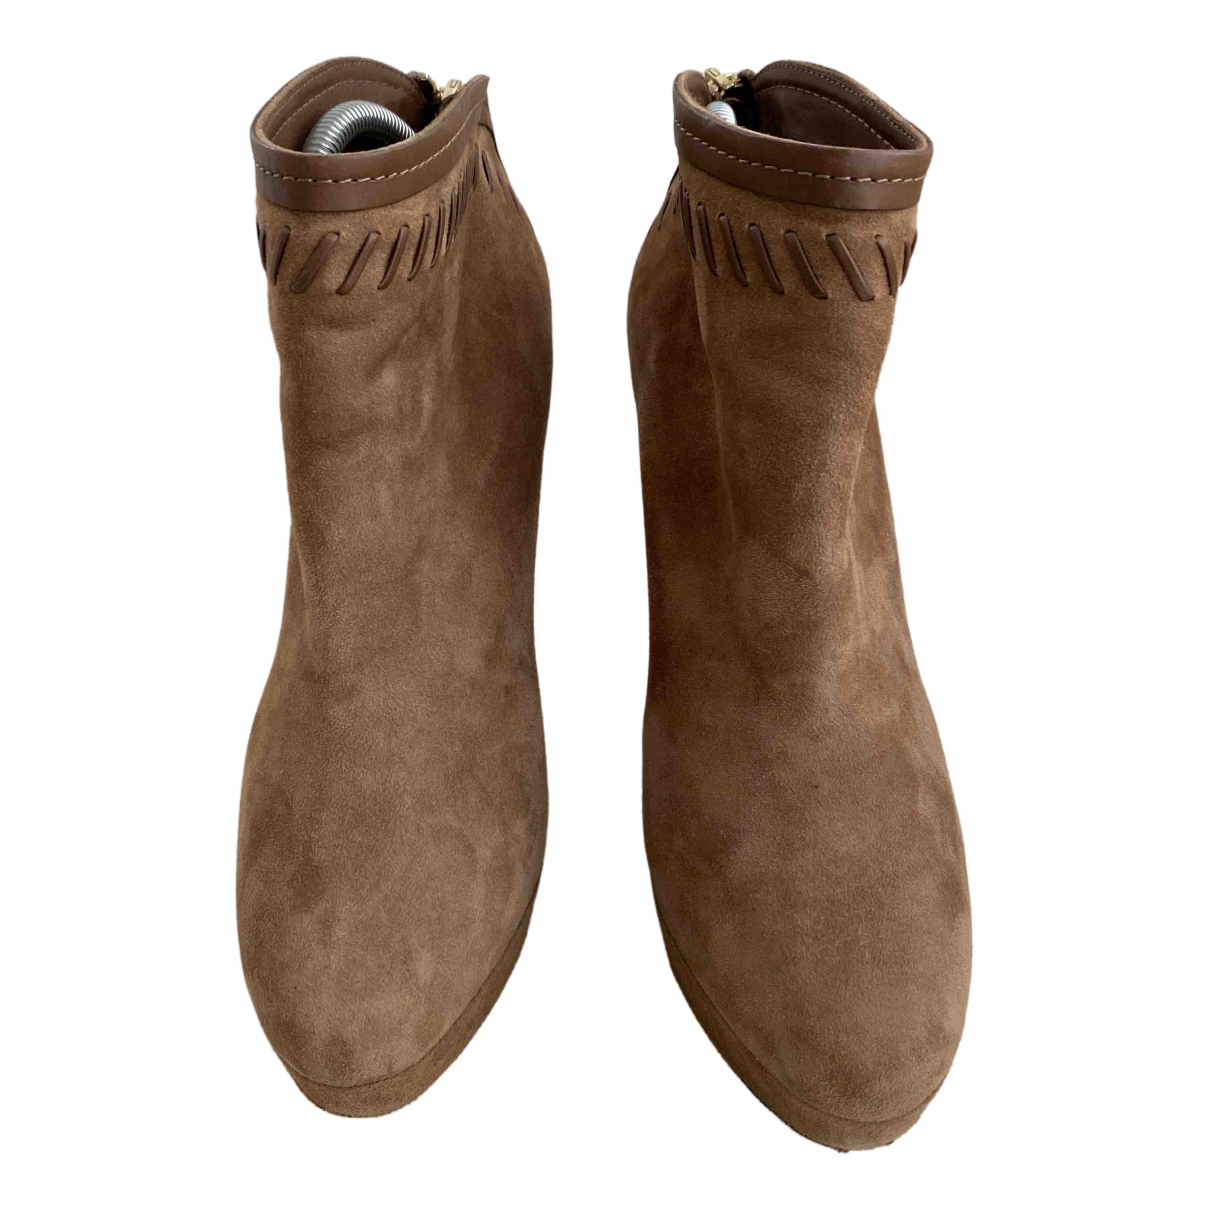 Jimmy Choo N Brown Suede Ankle boots for Women 35.5 EU